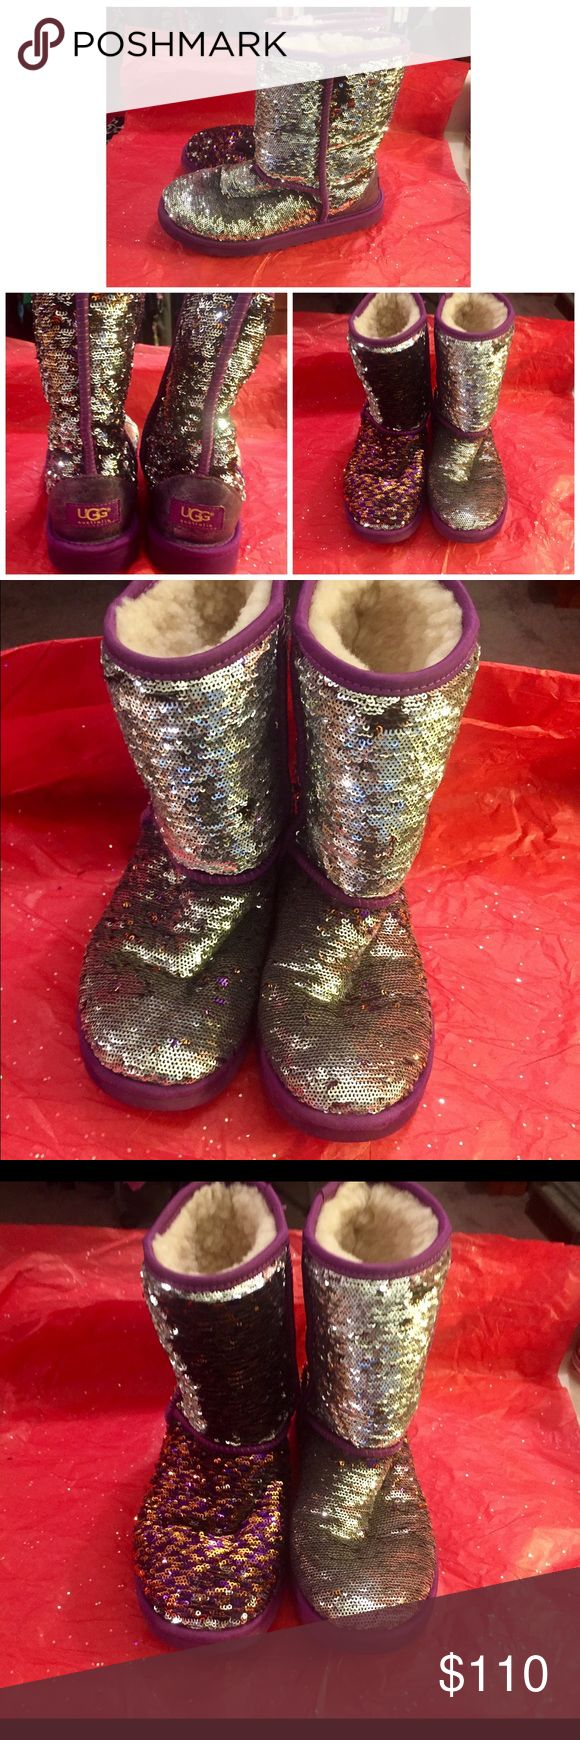 UGG CLASSIC SHORT SPARKLE BOOTS IN PURPLE These will be going quickly! These are the amazing Ugg classic short sparkle boots in purple w/silver, as well as gold!! The sequins are easily arranged the opposite direction turning the sequins from silver to GOLD!!-see pic #3. I bought these for my cousin to wear to the WA Husky game, & after she wore them 1-2xs but only for a few hours. Inside is absolutely perfect as is the outside. Gorgeous Ugg's!.⭐NO I AM SORRY I DO NOT TRADE-THANK YOU!⭐ UGG…